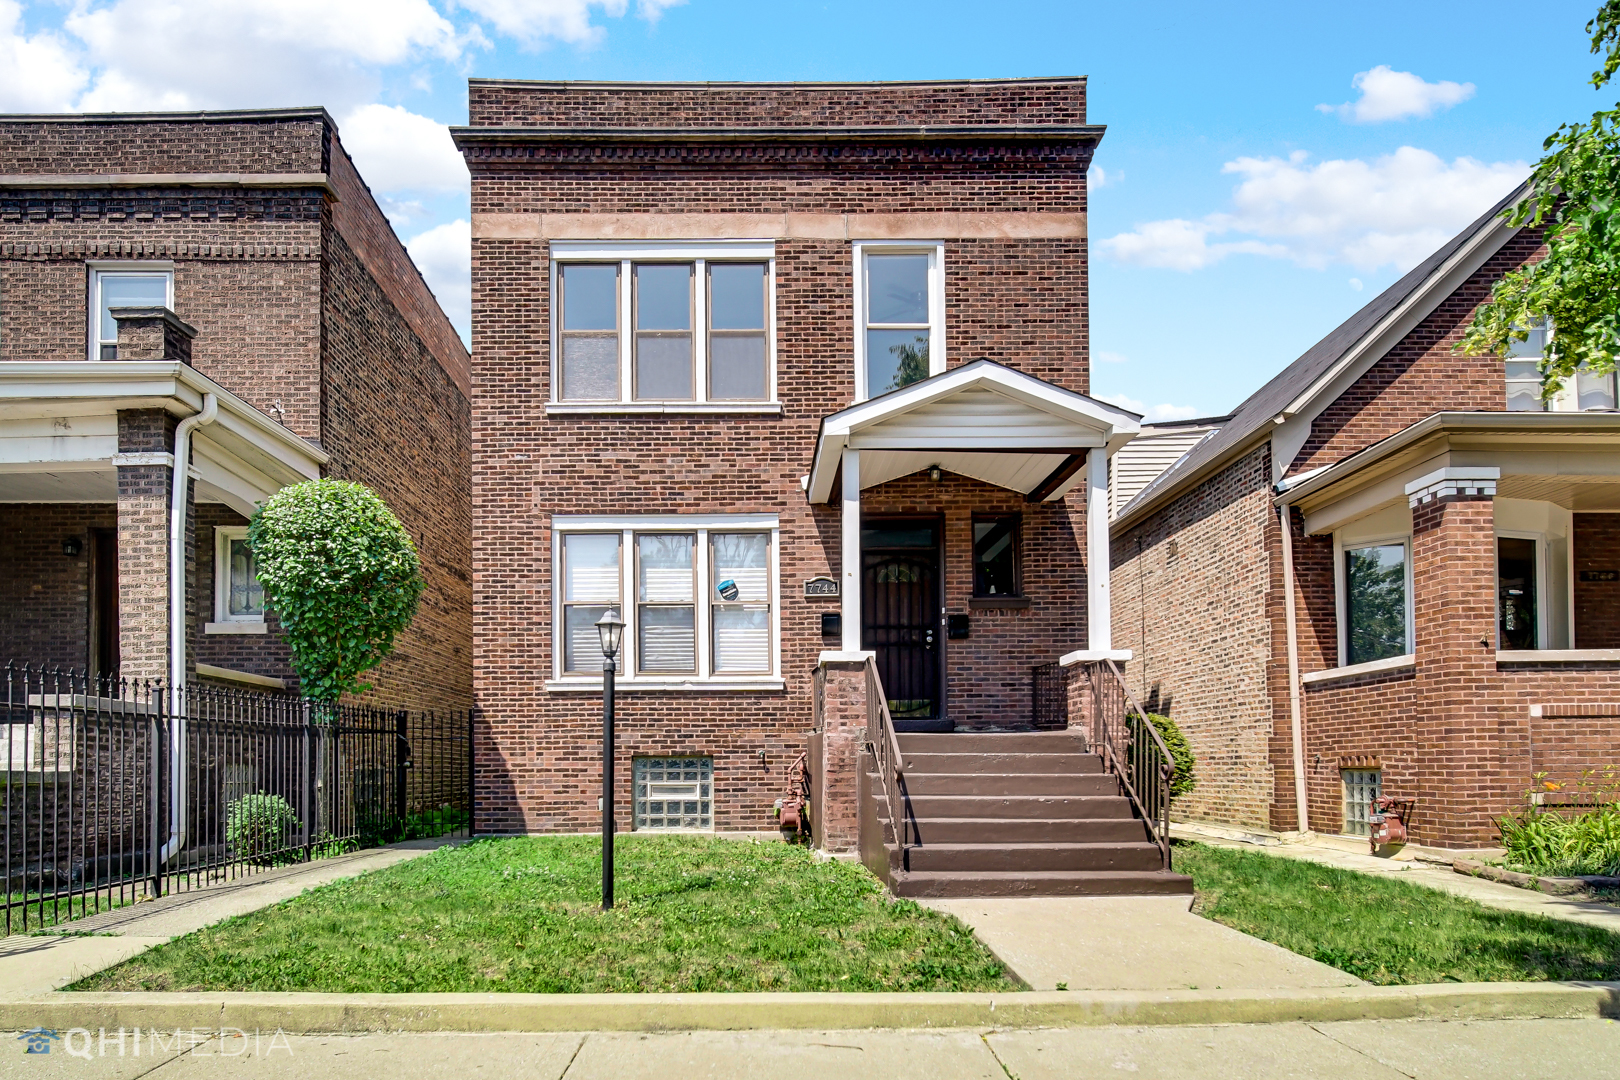 7744 S May Street, Chicago, IL 60620